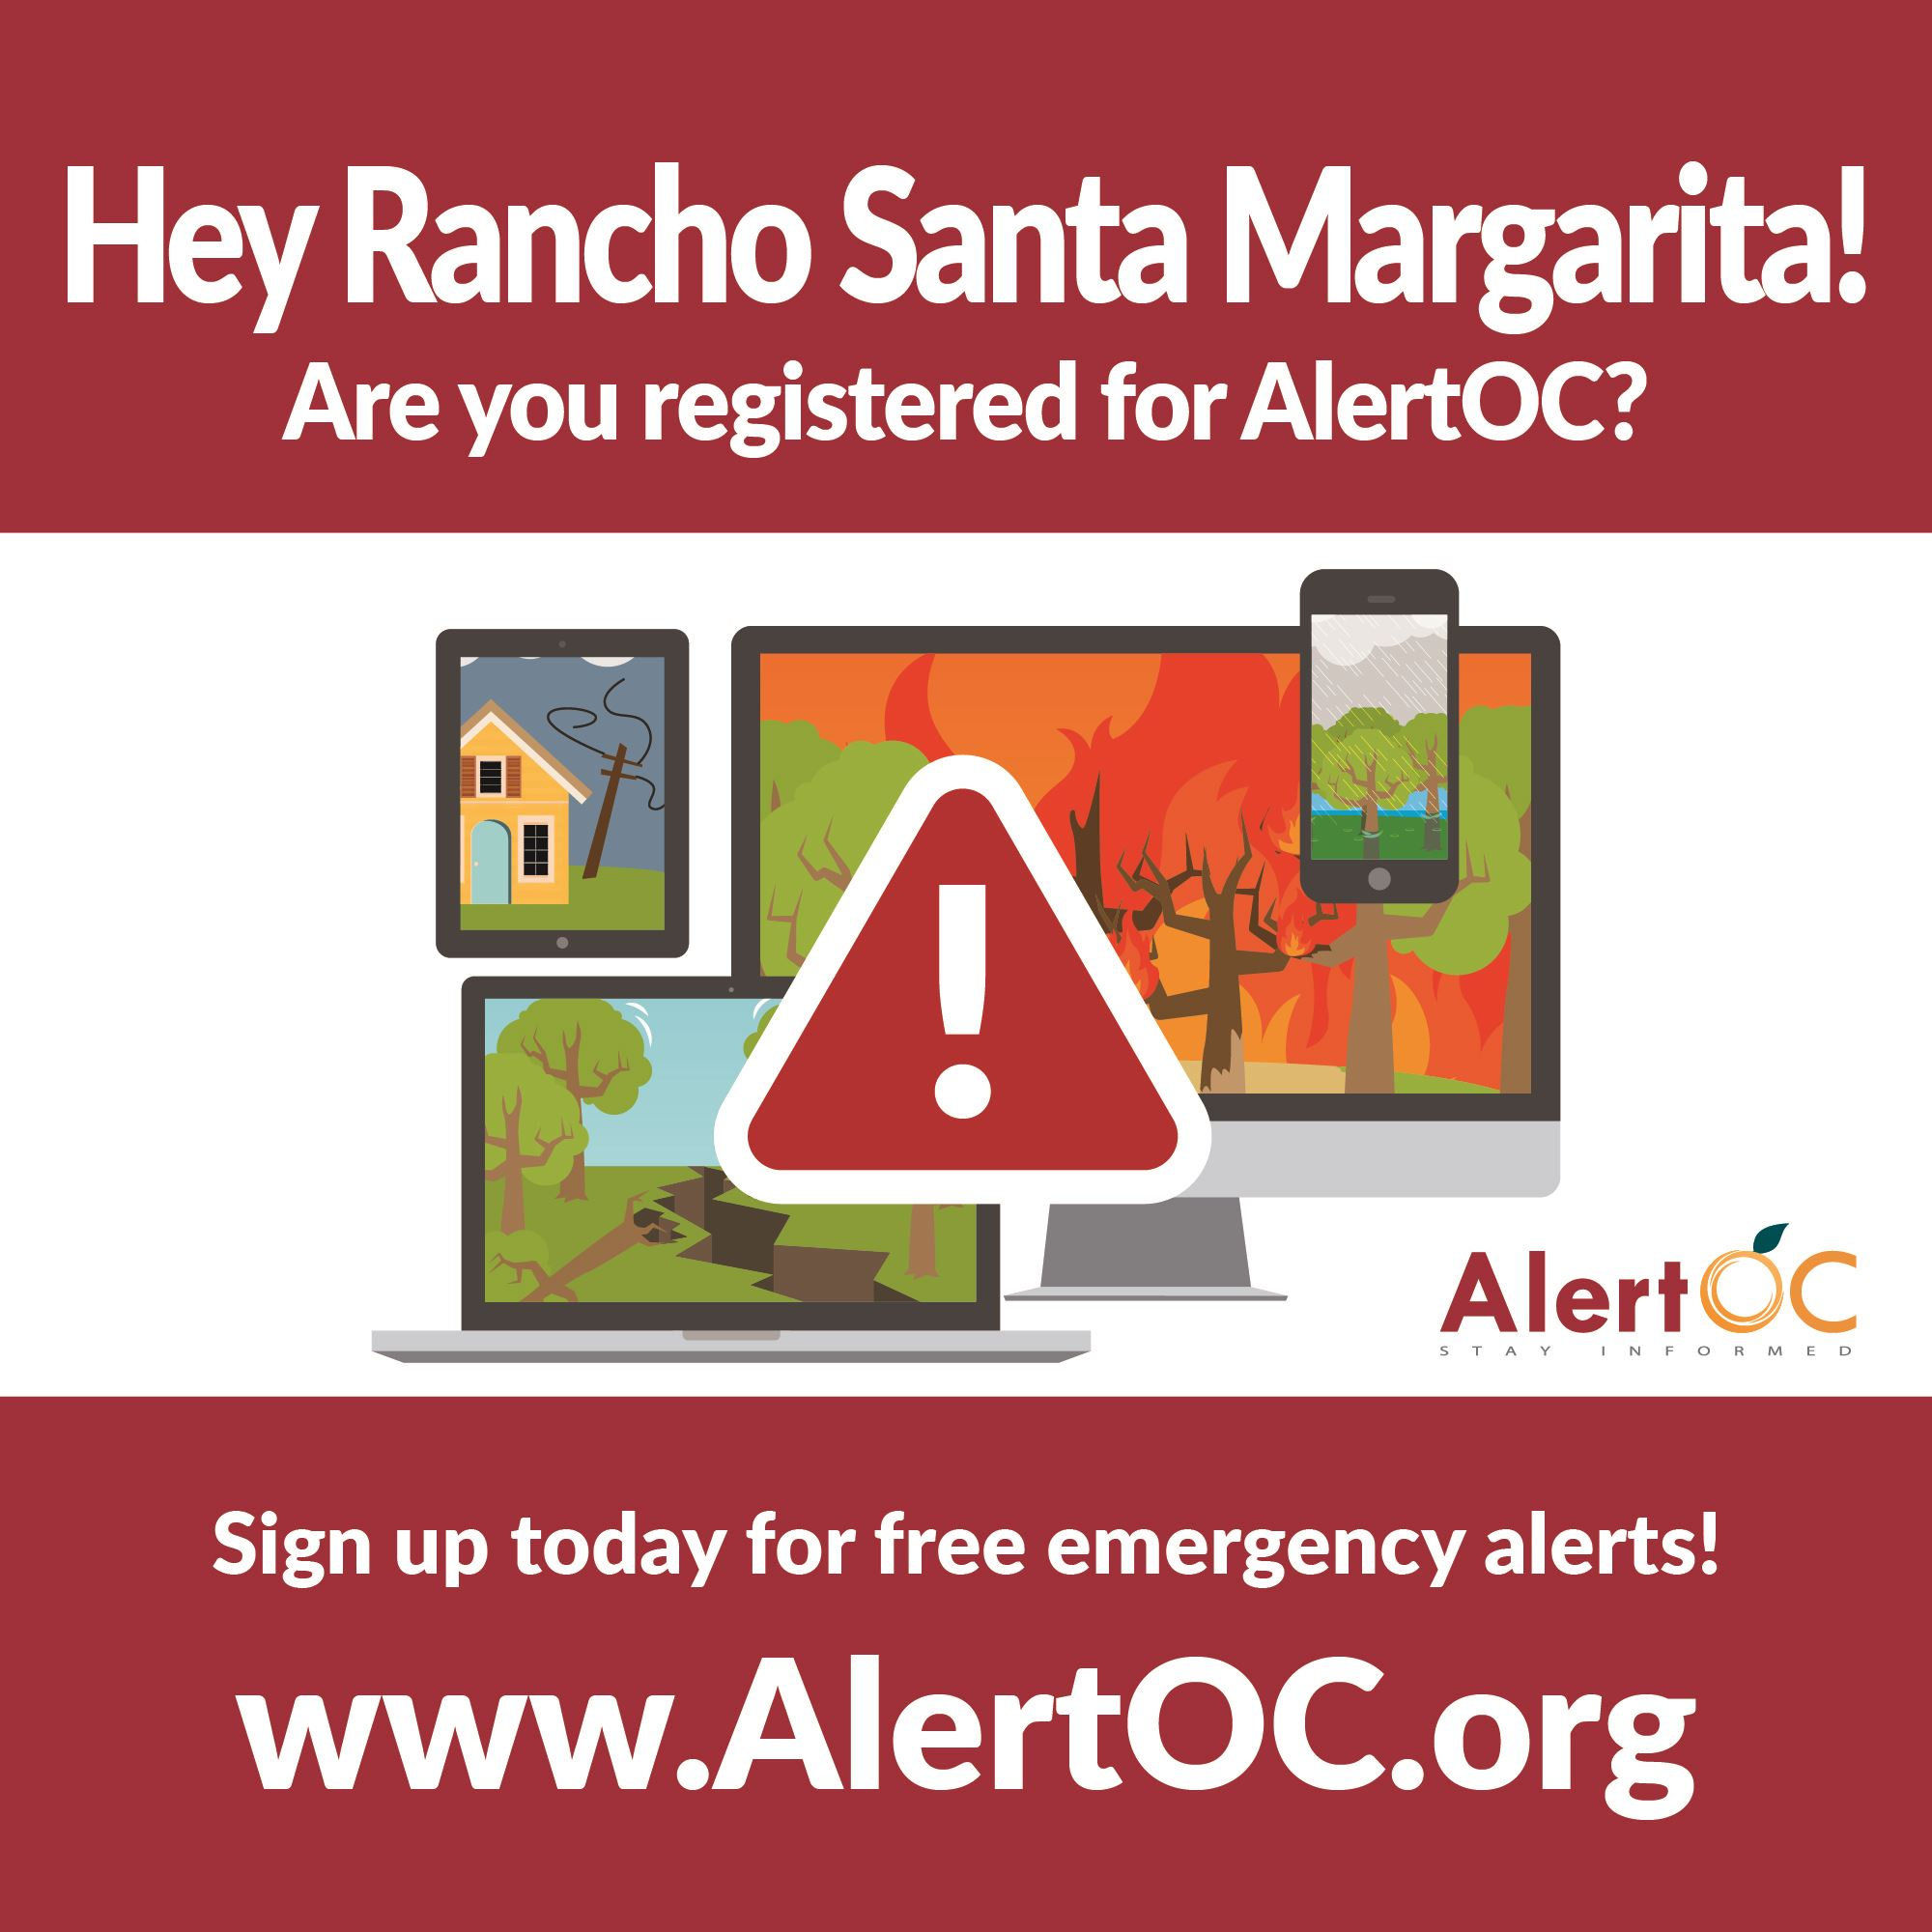 Rancho Santa Margarita AlertOC graphic